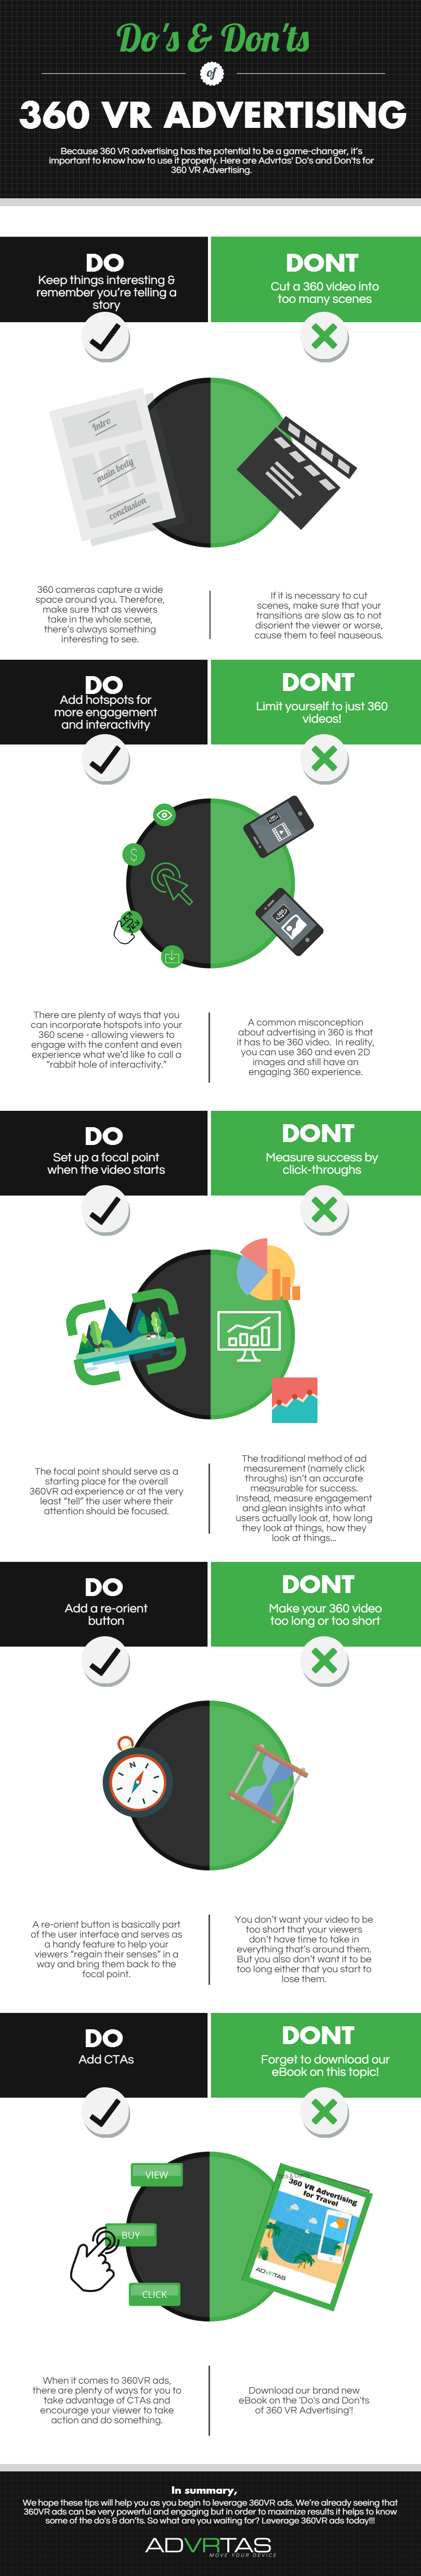 Do's and Don'ts of 360 VR Advertising Infographic